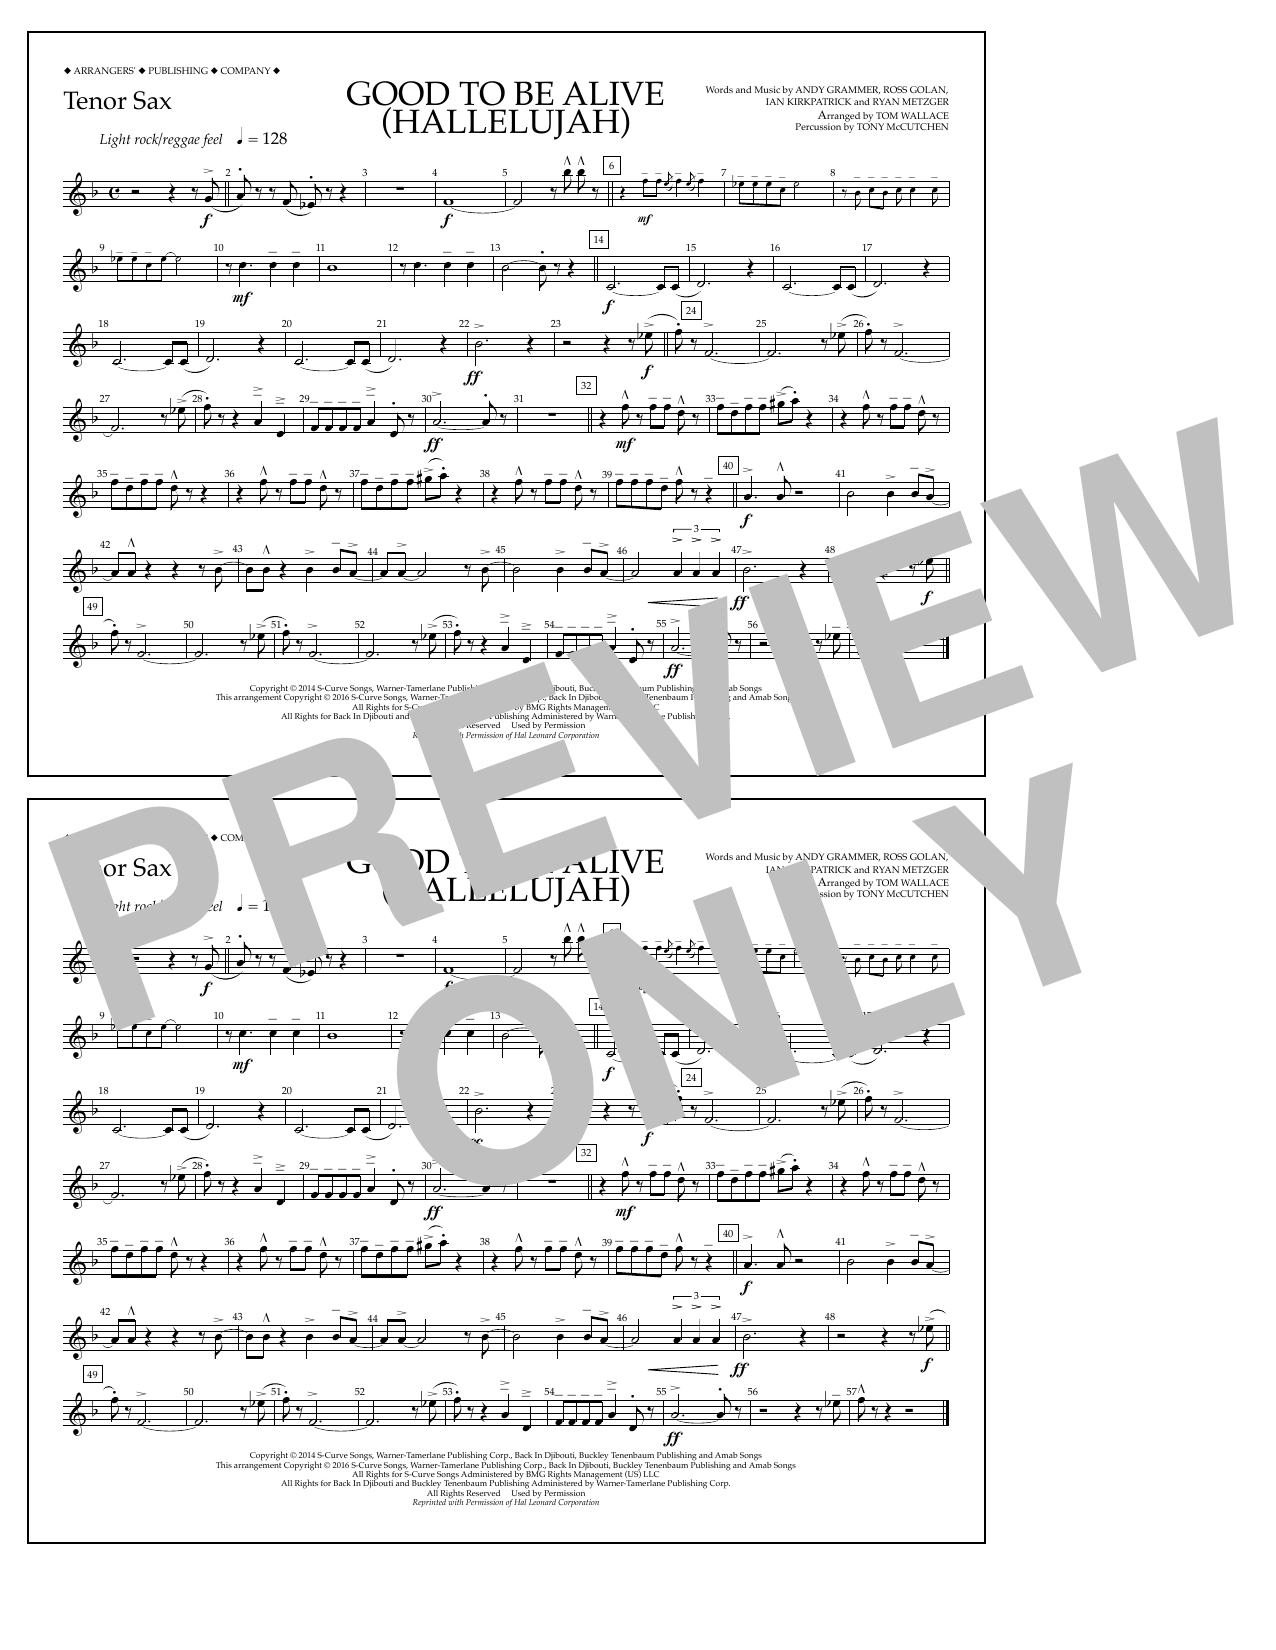 Good to Be Alive (Hallelujah) - Tenor Sax Sheet Music